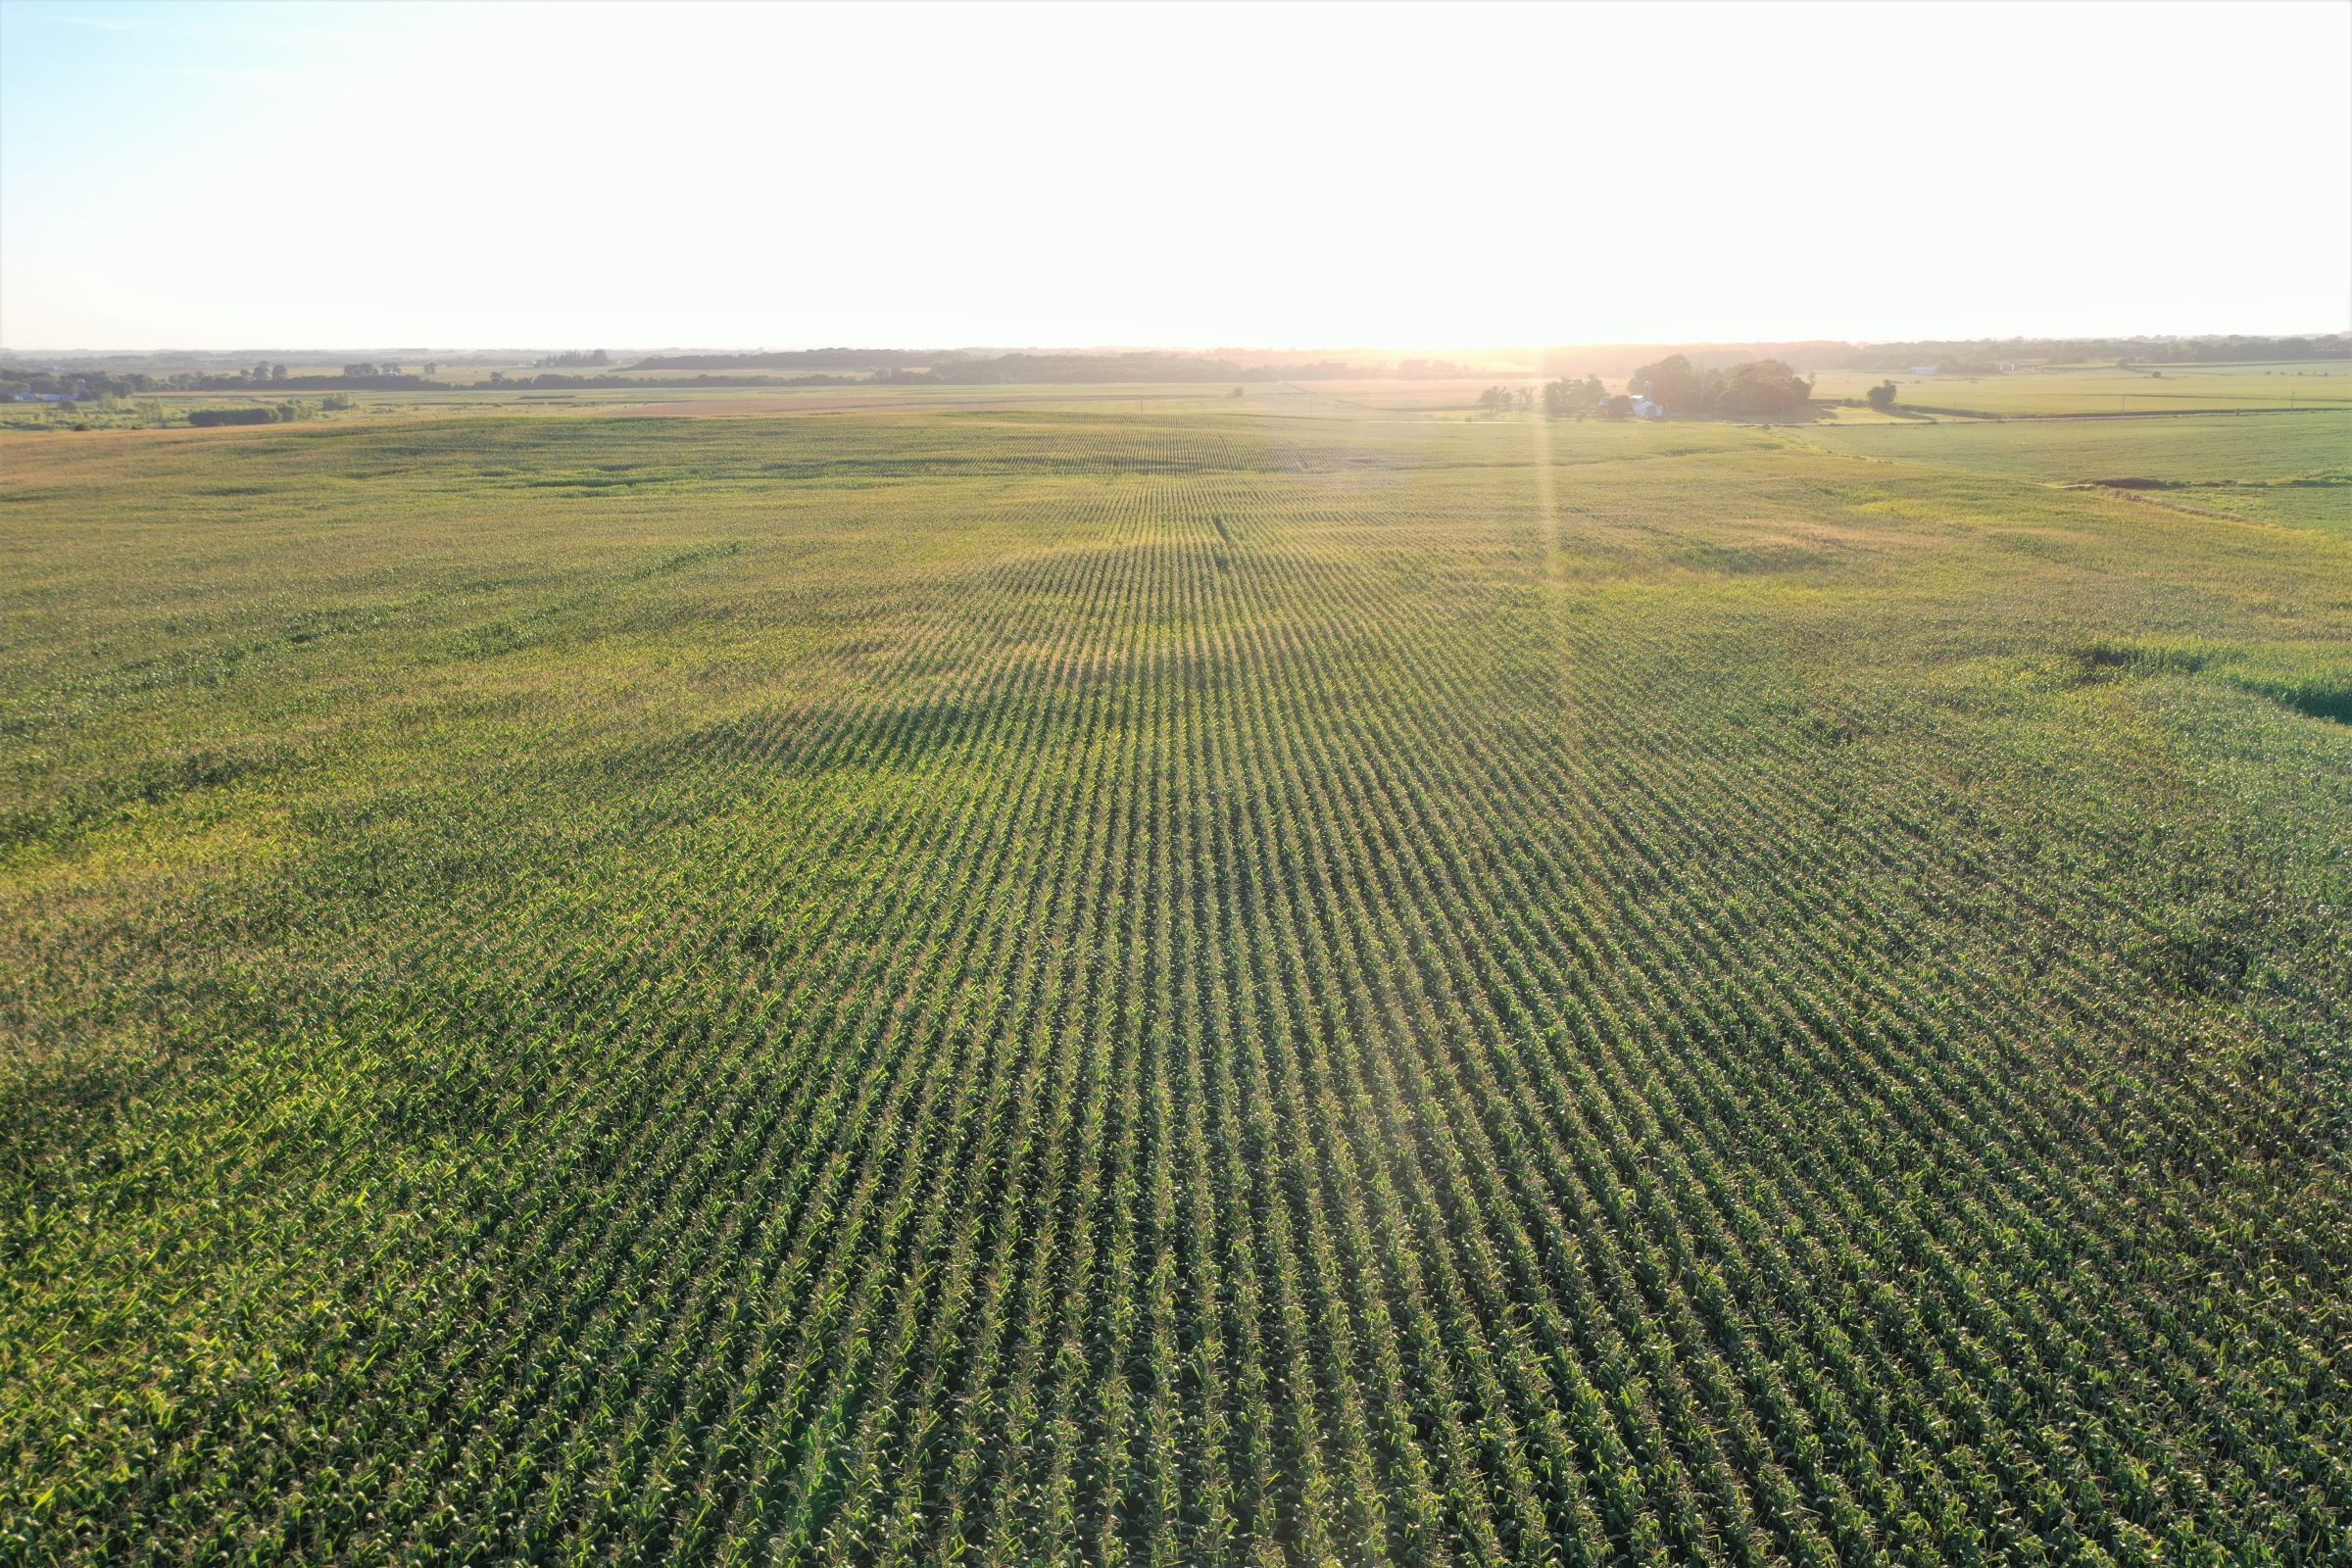 land-butler-county-iowa-157-acres-listing-number-15128-2-2020-08-20-212008.jpg